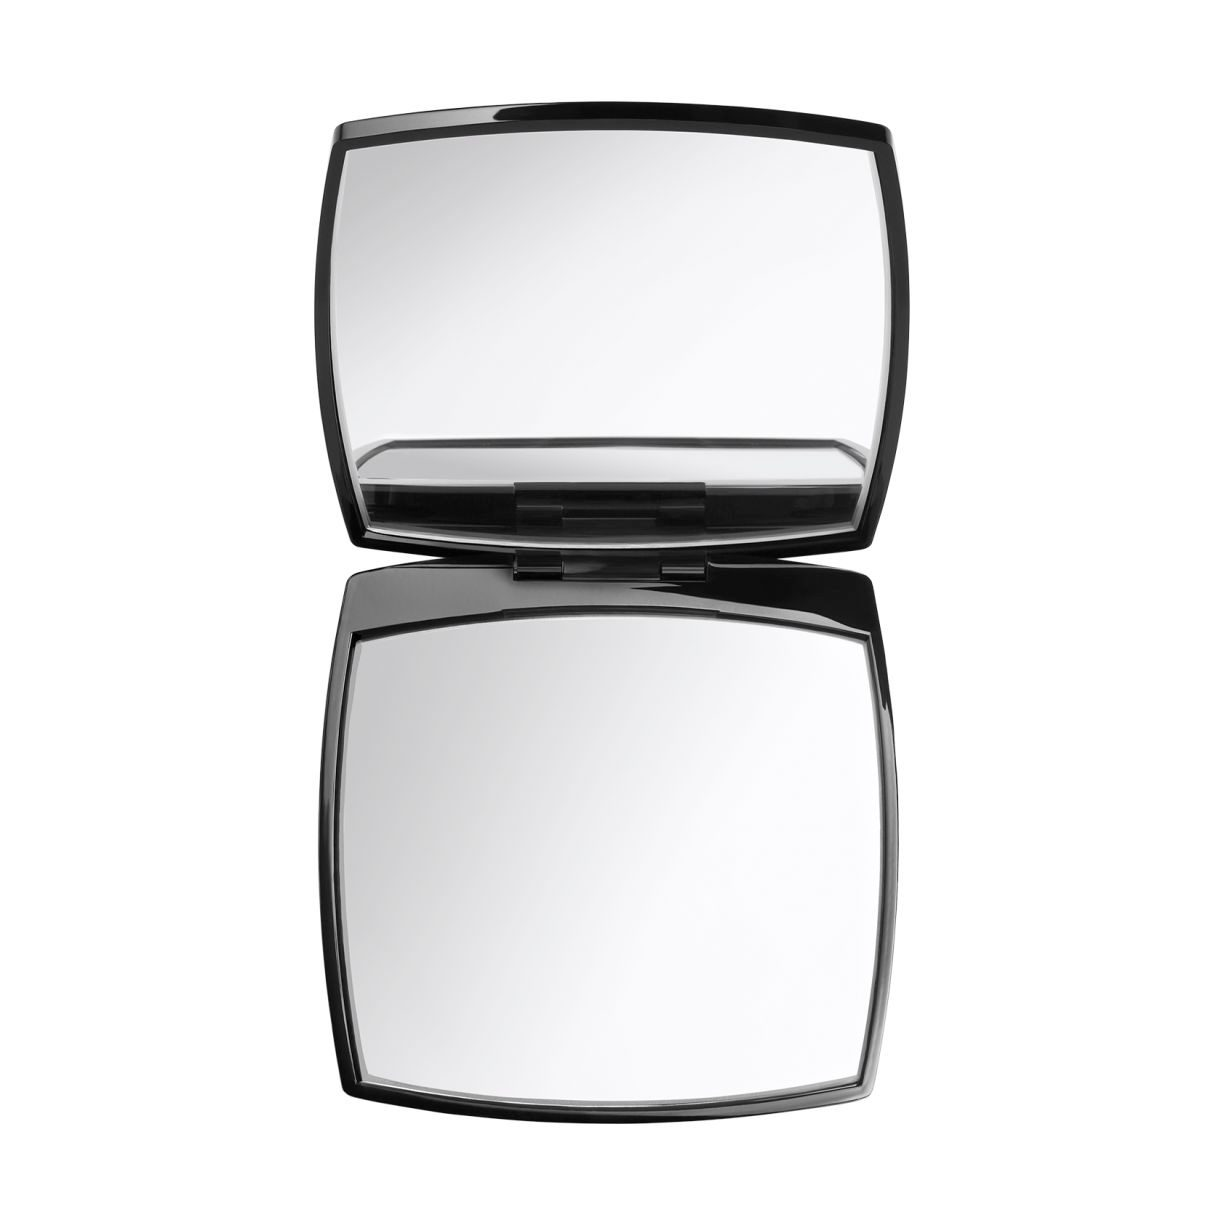 MIROIR DOUBLE FACETTES TWO-SIDED MIRROR 雙面彩妝镜